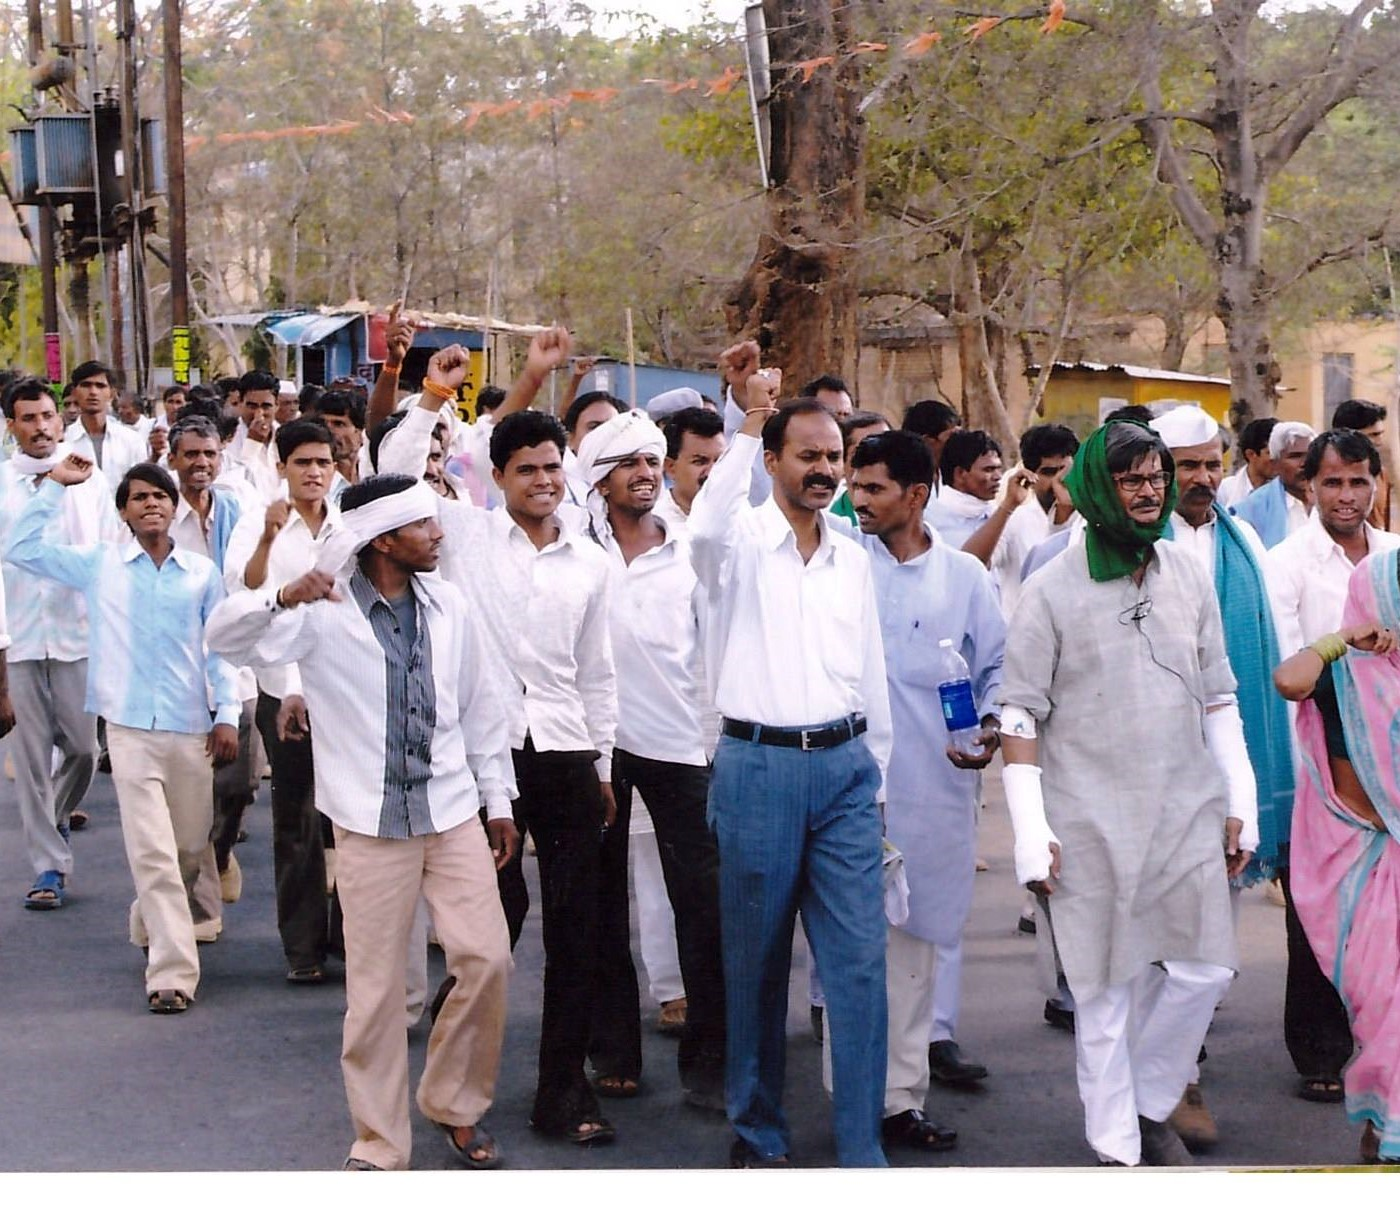 Protest march in 2011, including leaders injured by alleged assaults by project supporters. Courtesy KSS